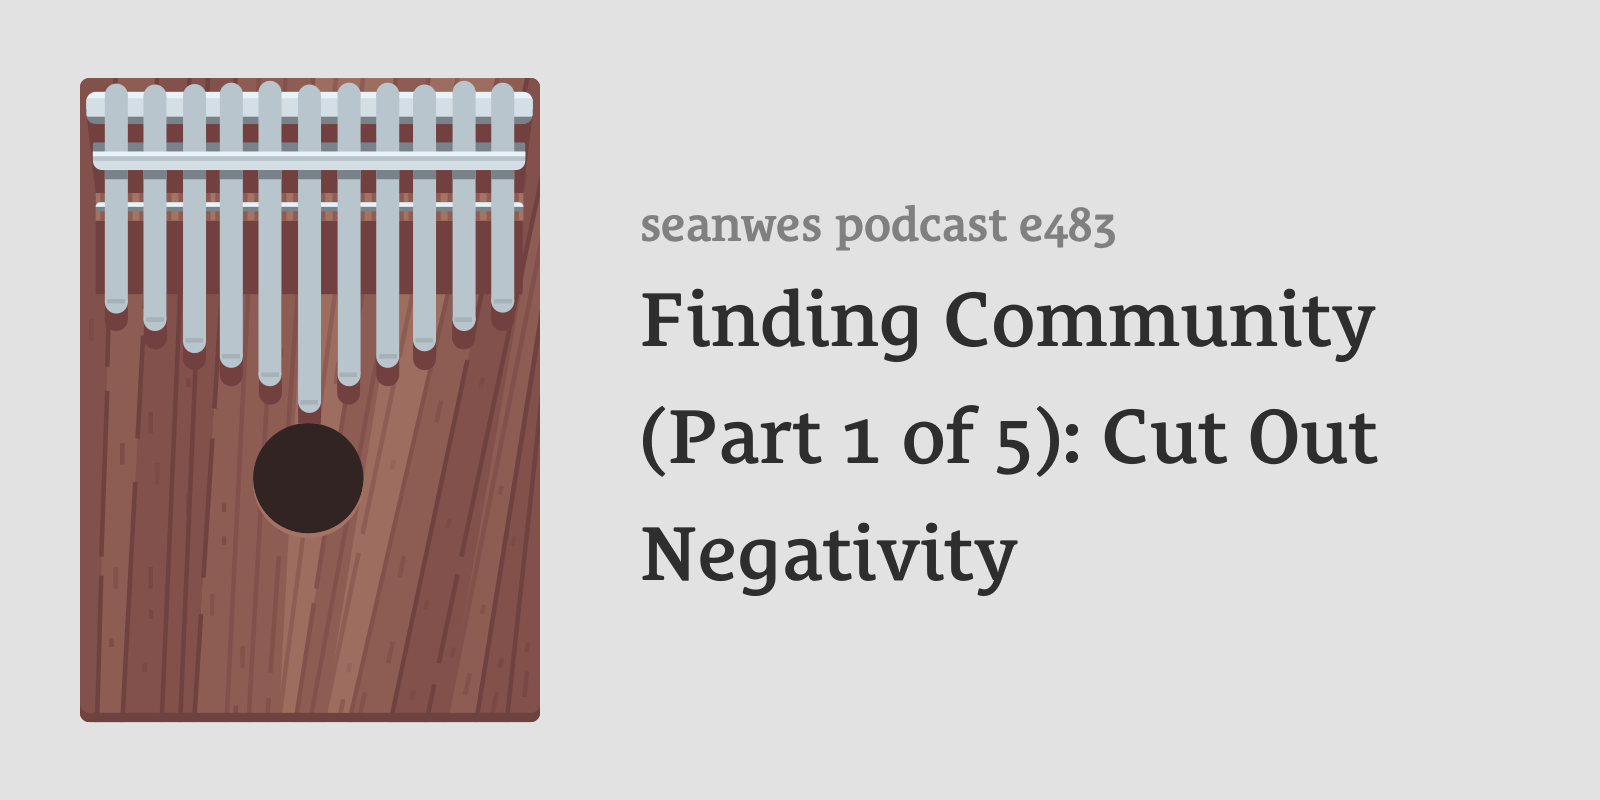 483: Sabbatical Episode: Finding Community (Part 1 of 5): Cut Out Negativity